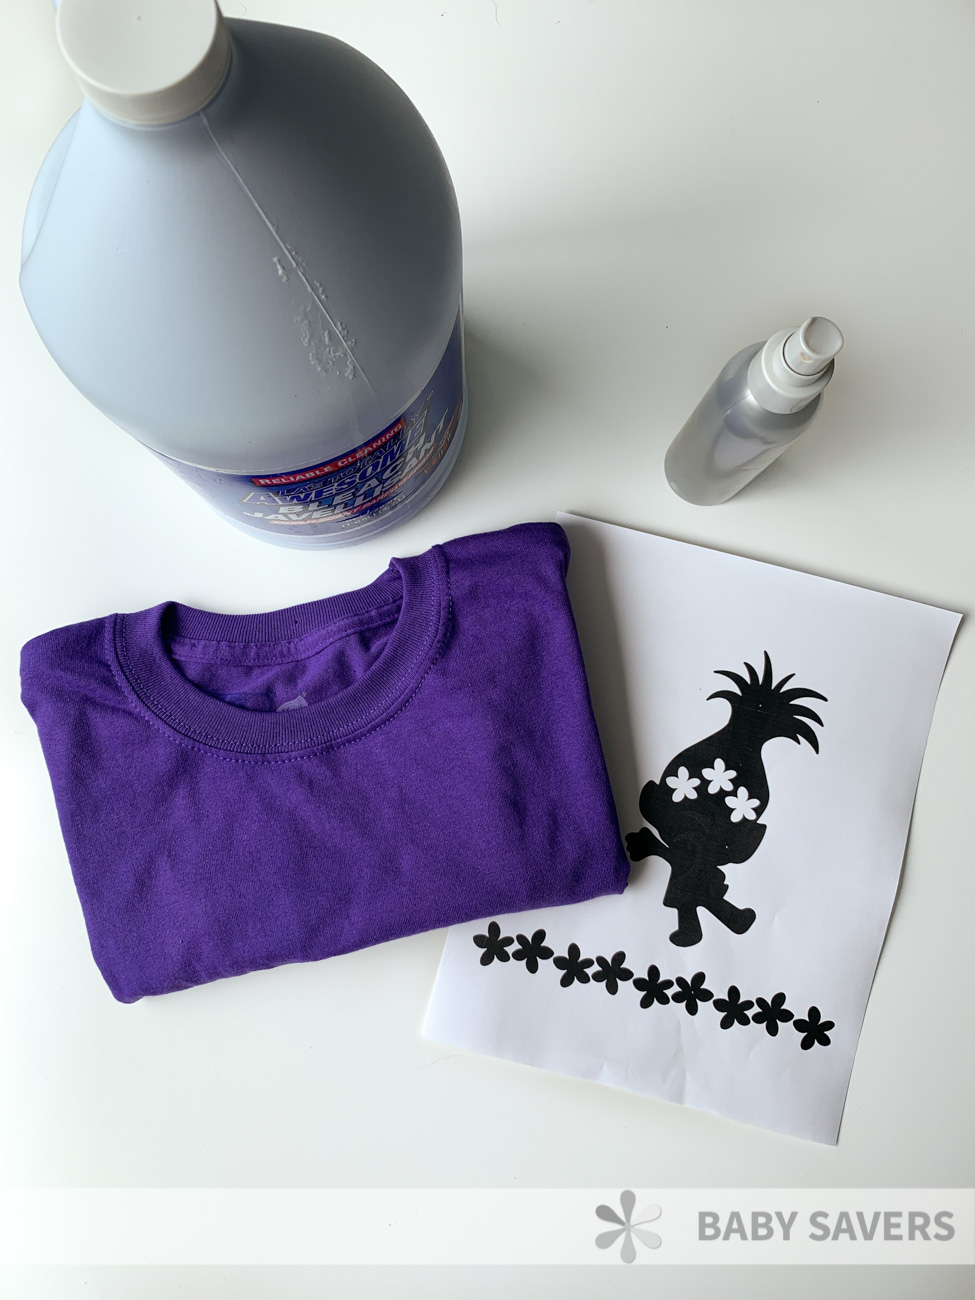 Bottle of bleach, spray bottle, purple t shirt and a printed silhouette of Poppy the troll